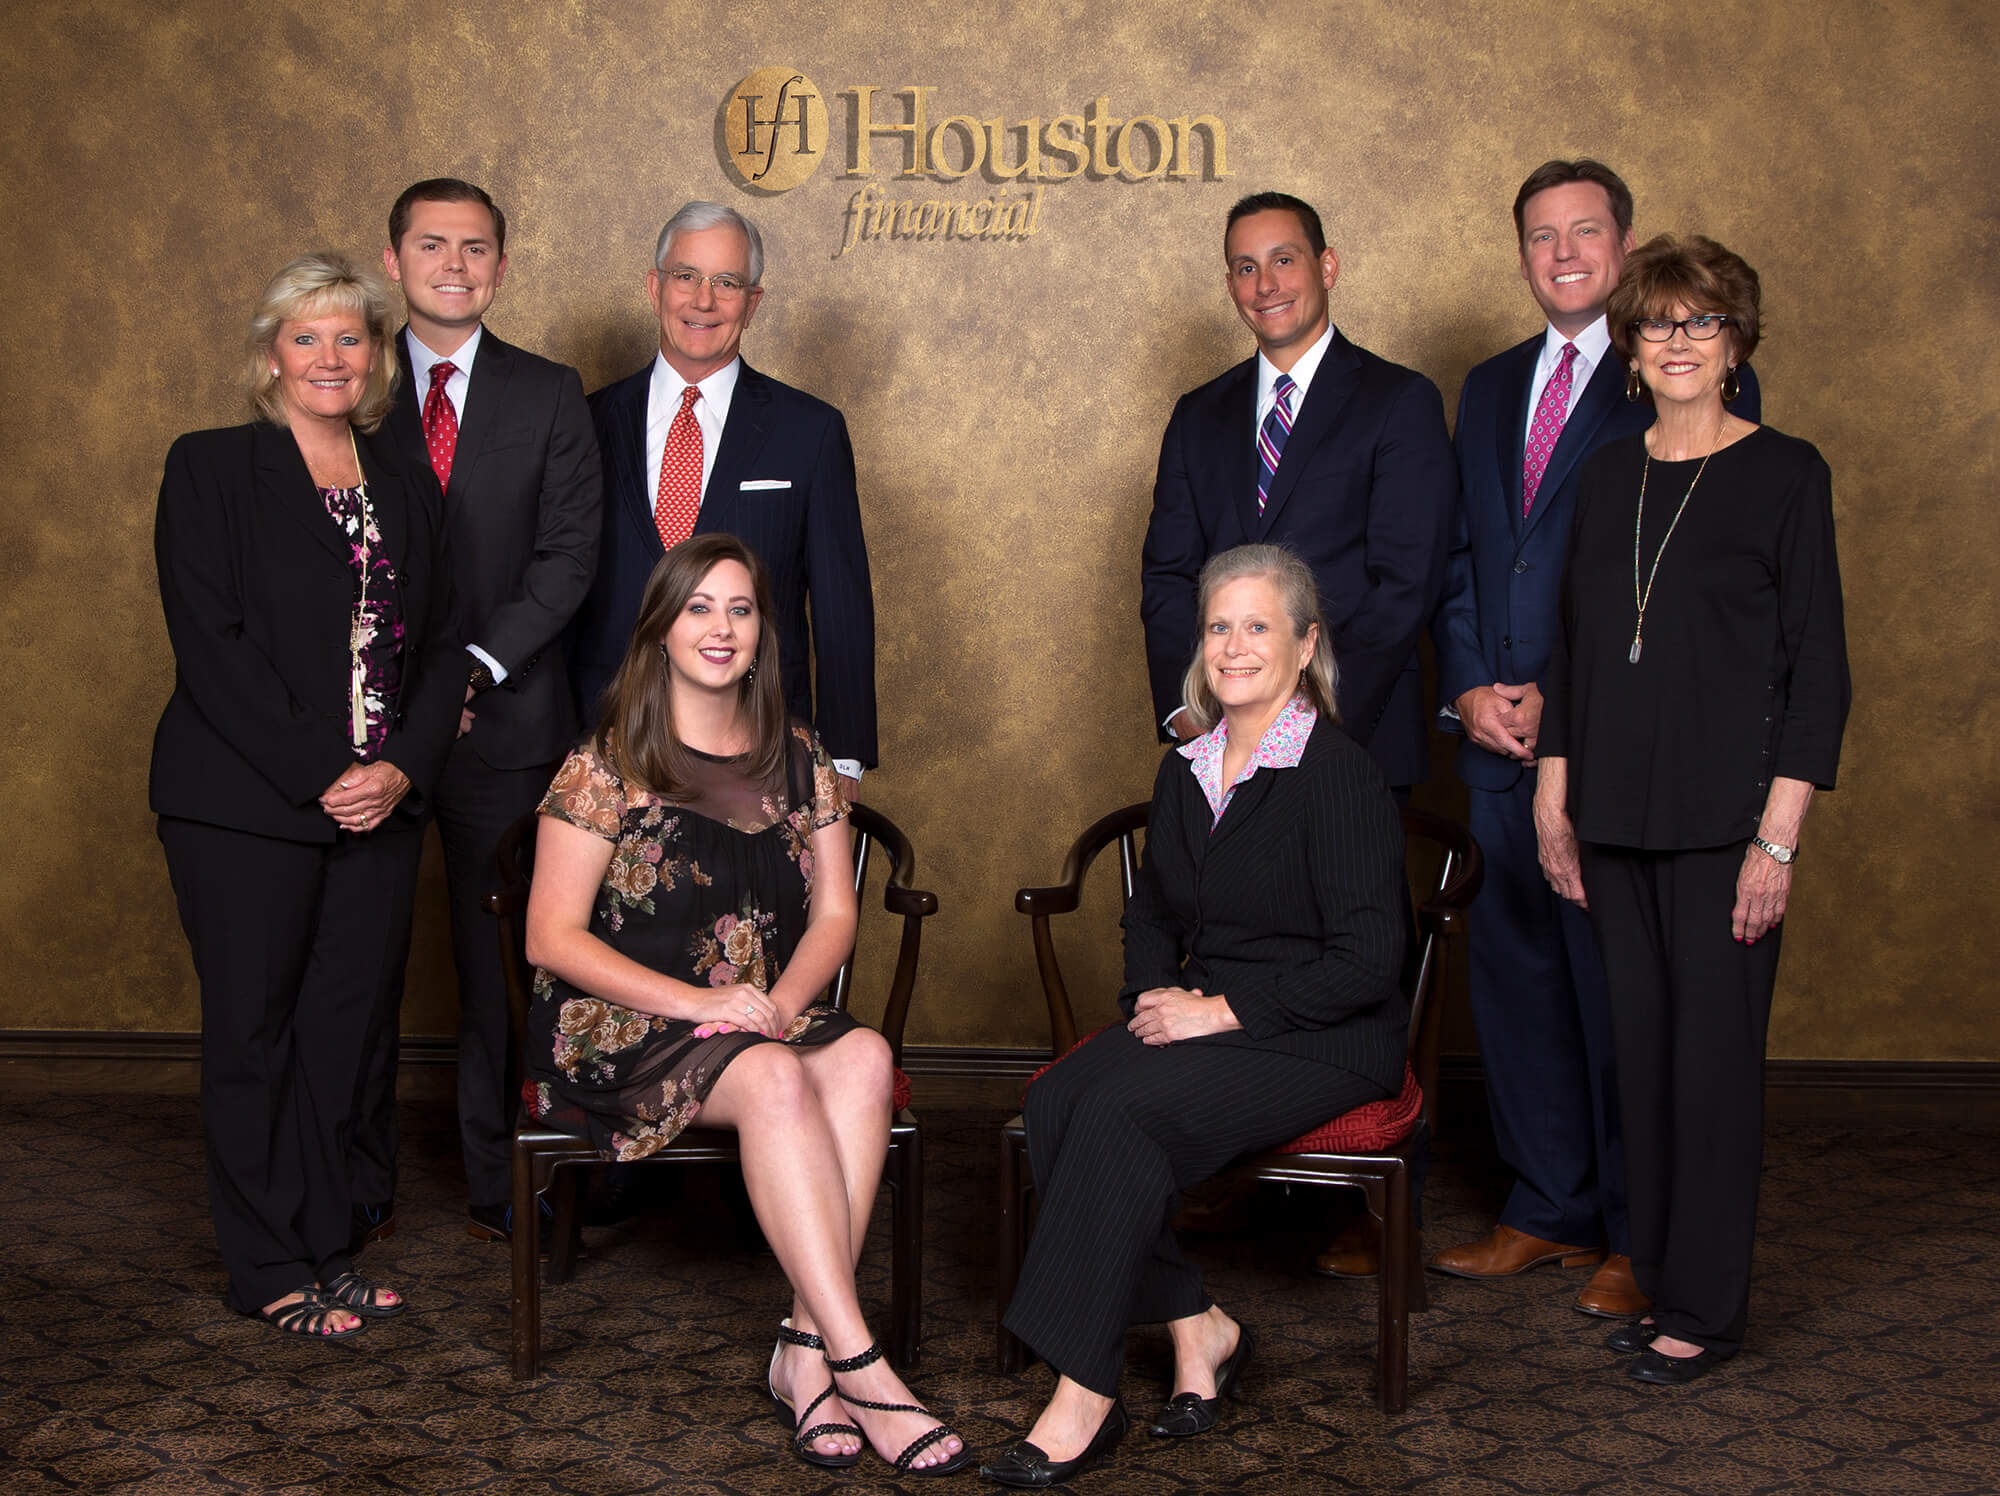 Houston Financial